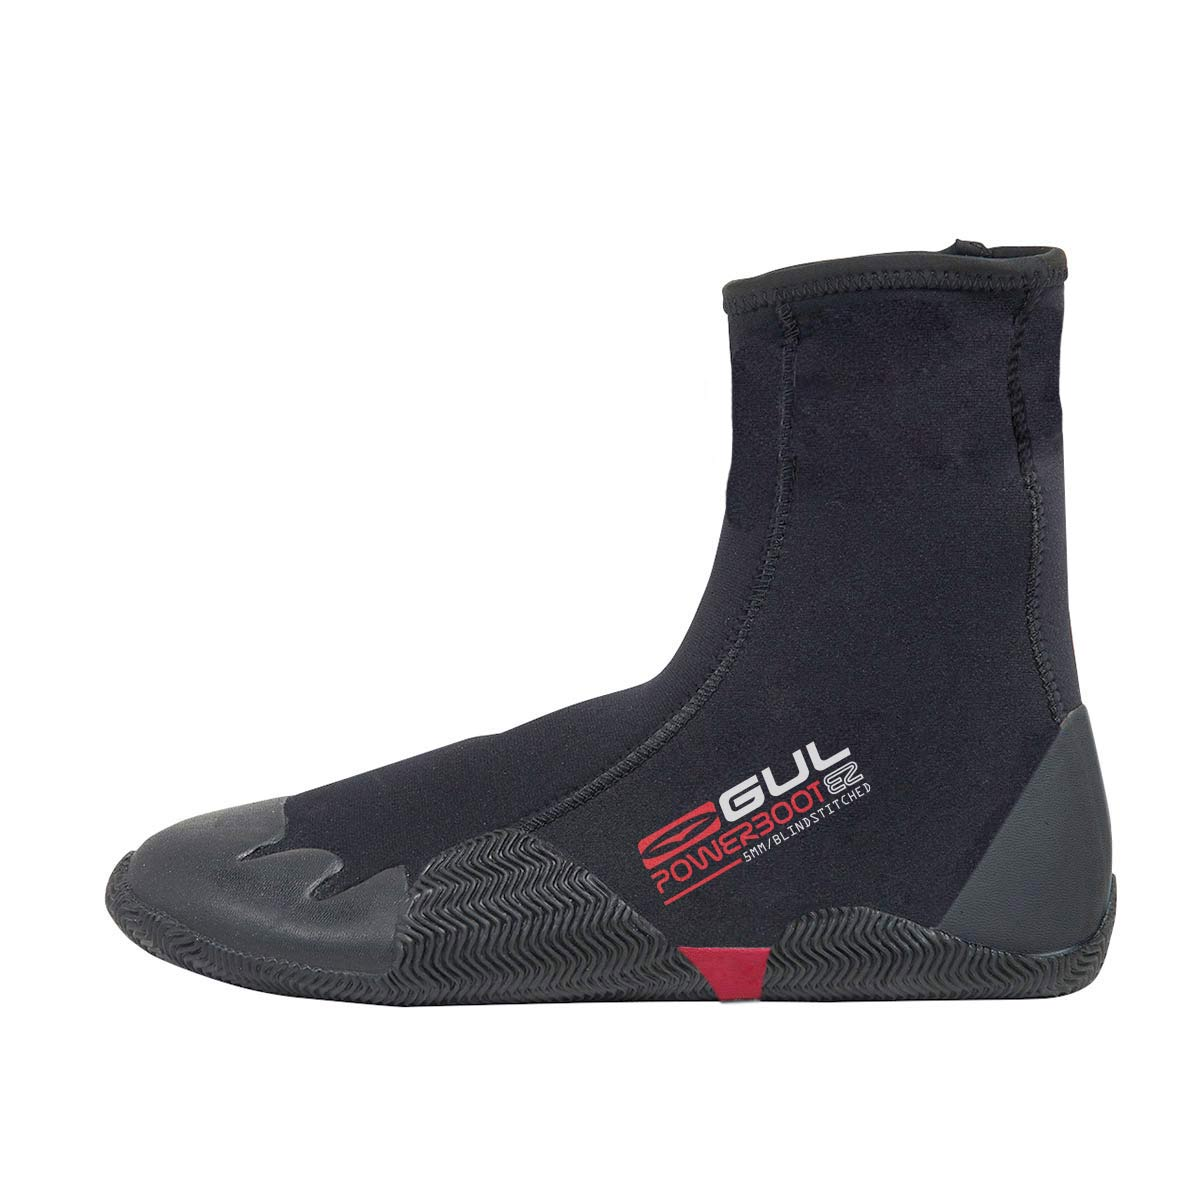 Gul - Power Boot - 5mm - Men's Round Toe Zipped Wetsuit Boot - B01306-B2BKBK